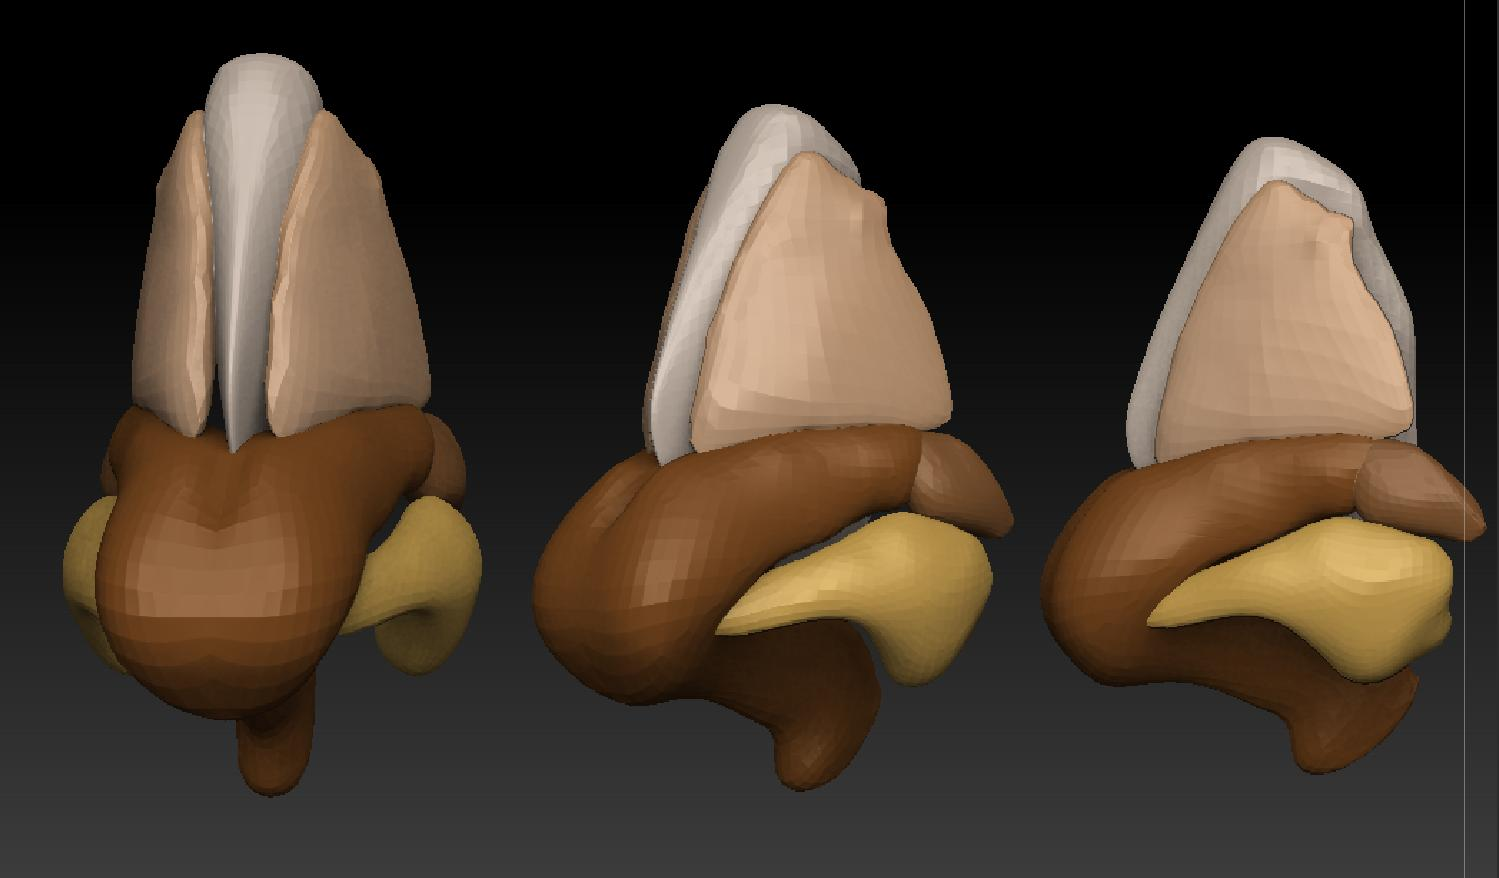 Free Models For Ecorche And Anatomy Study Page 2